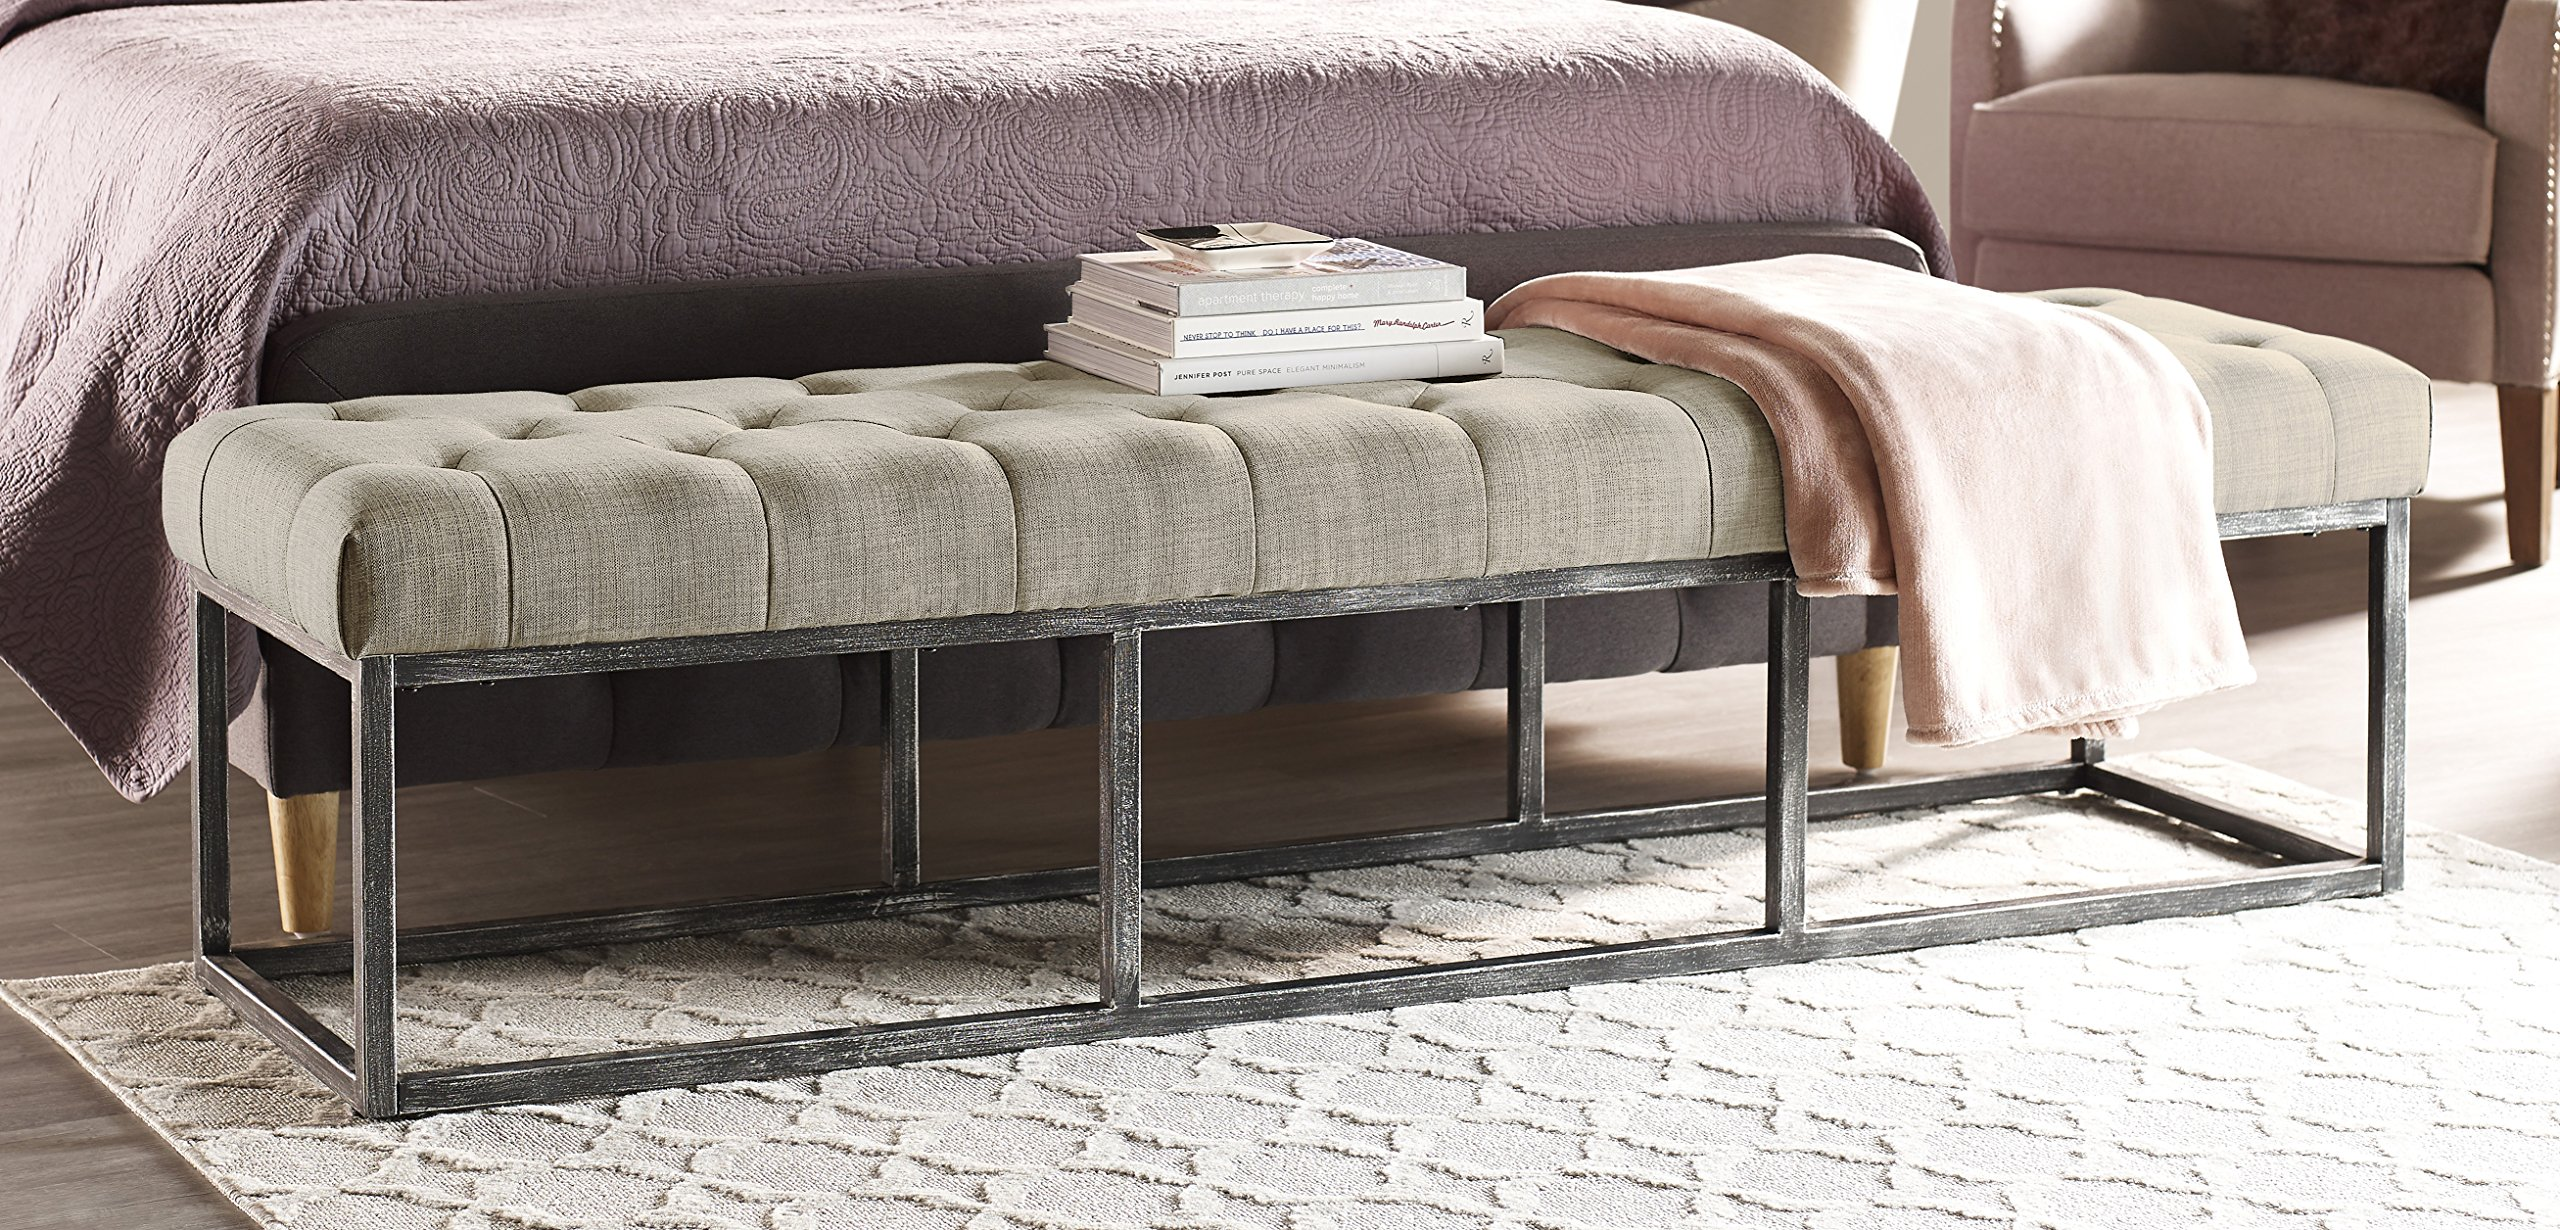 Serta Danes Tufted Bench with Iron Legs, Ivory